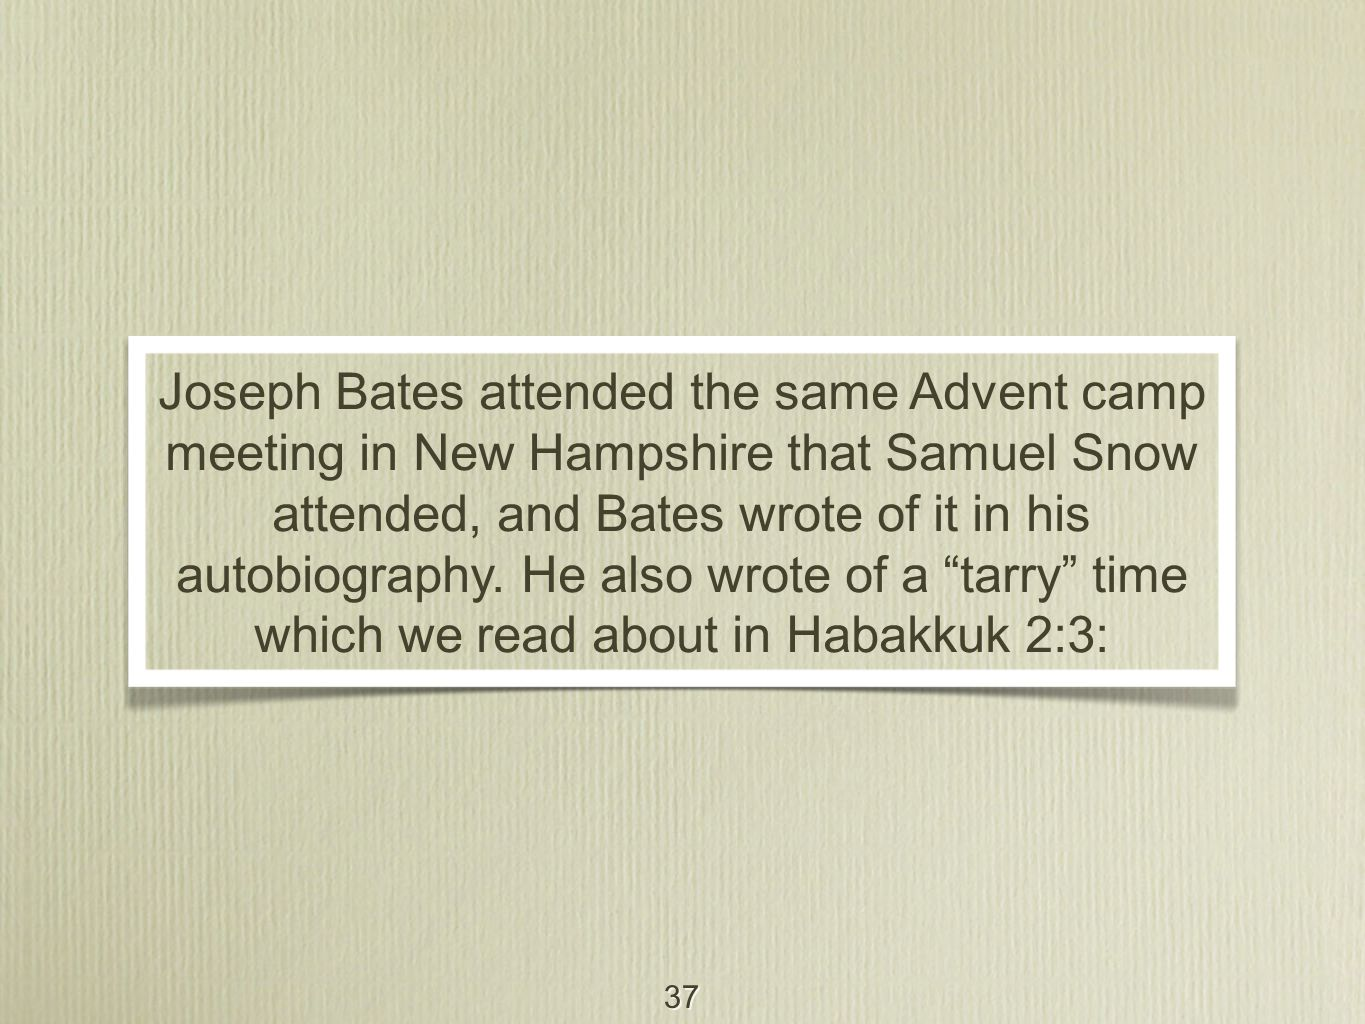 37 Joseph Bates attended the same Advent camp meeting in New Hampshire that Samuel Snow attended, and Bates wrote of it in his autobiography. He also